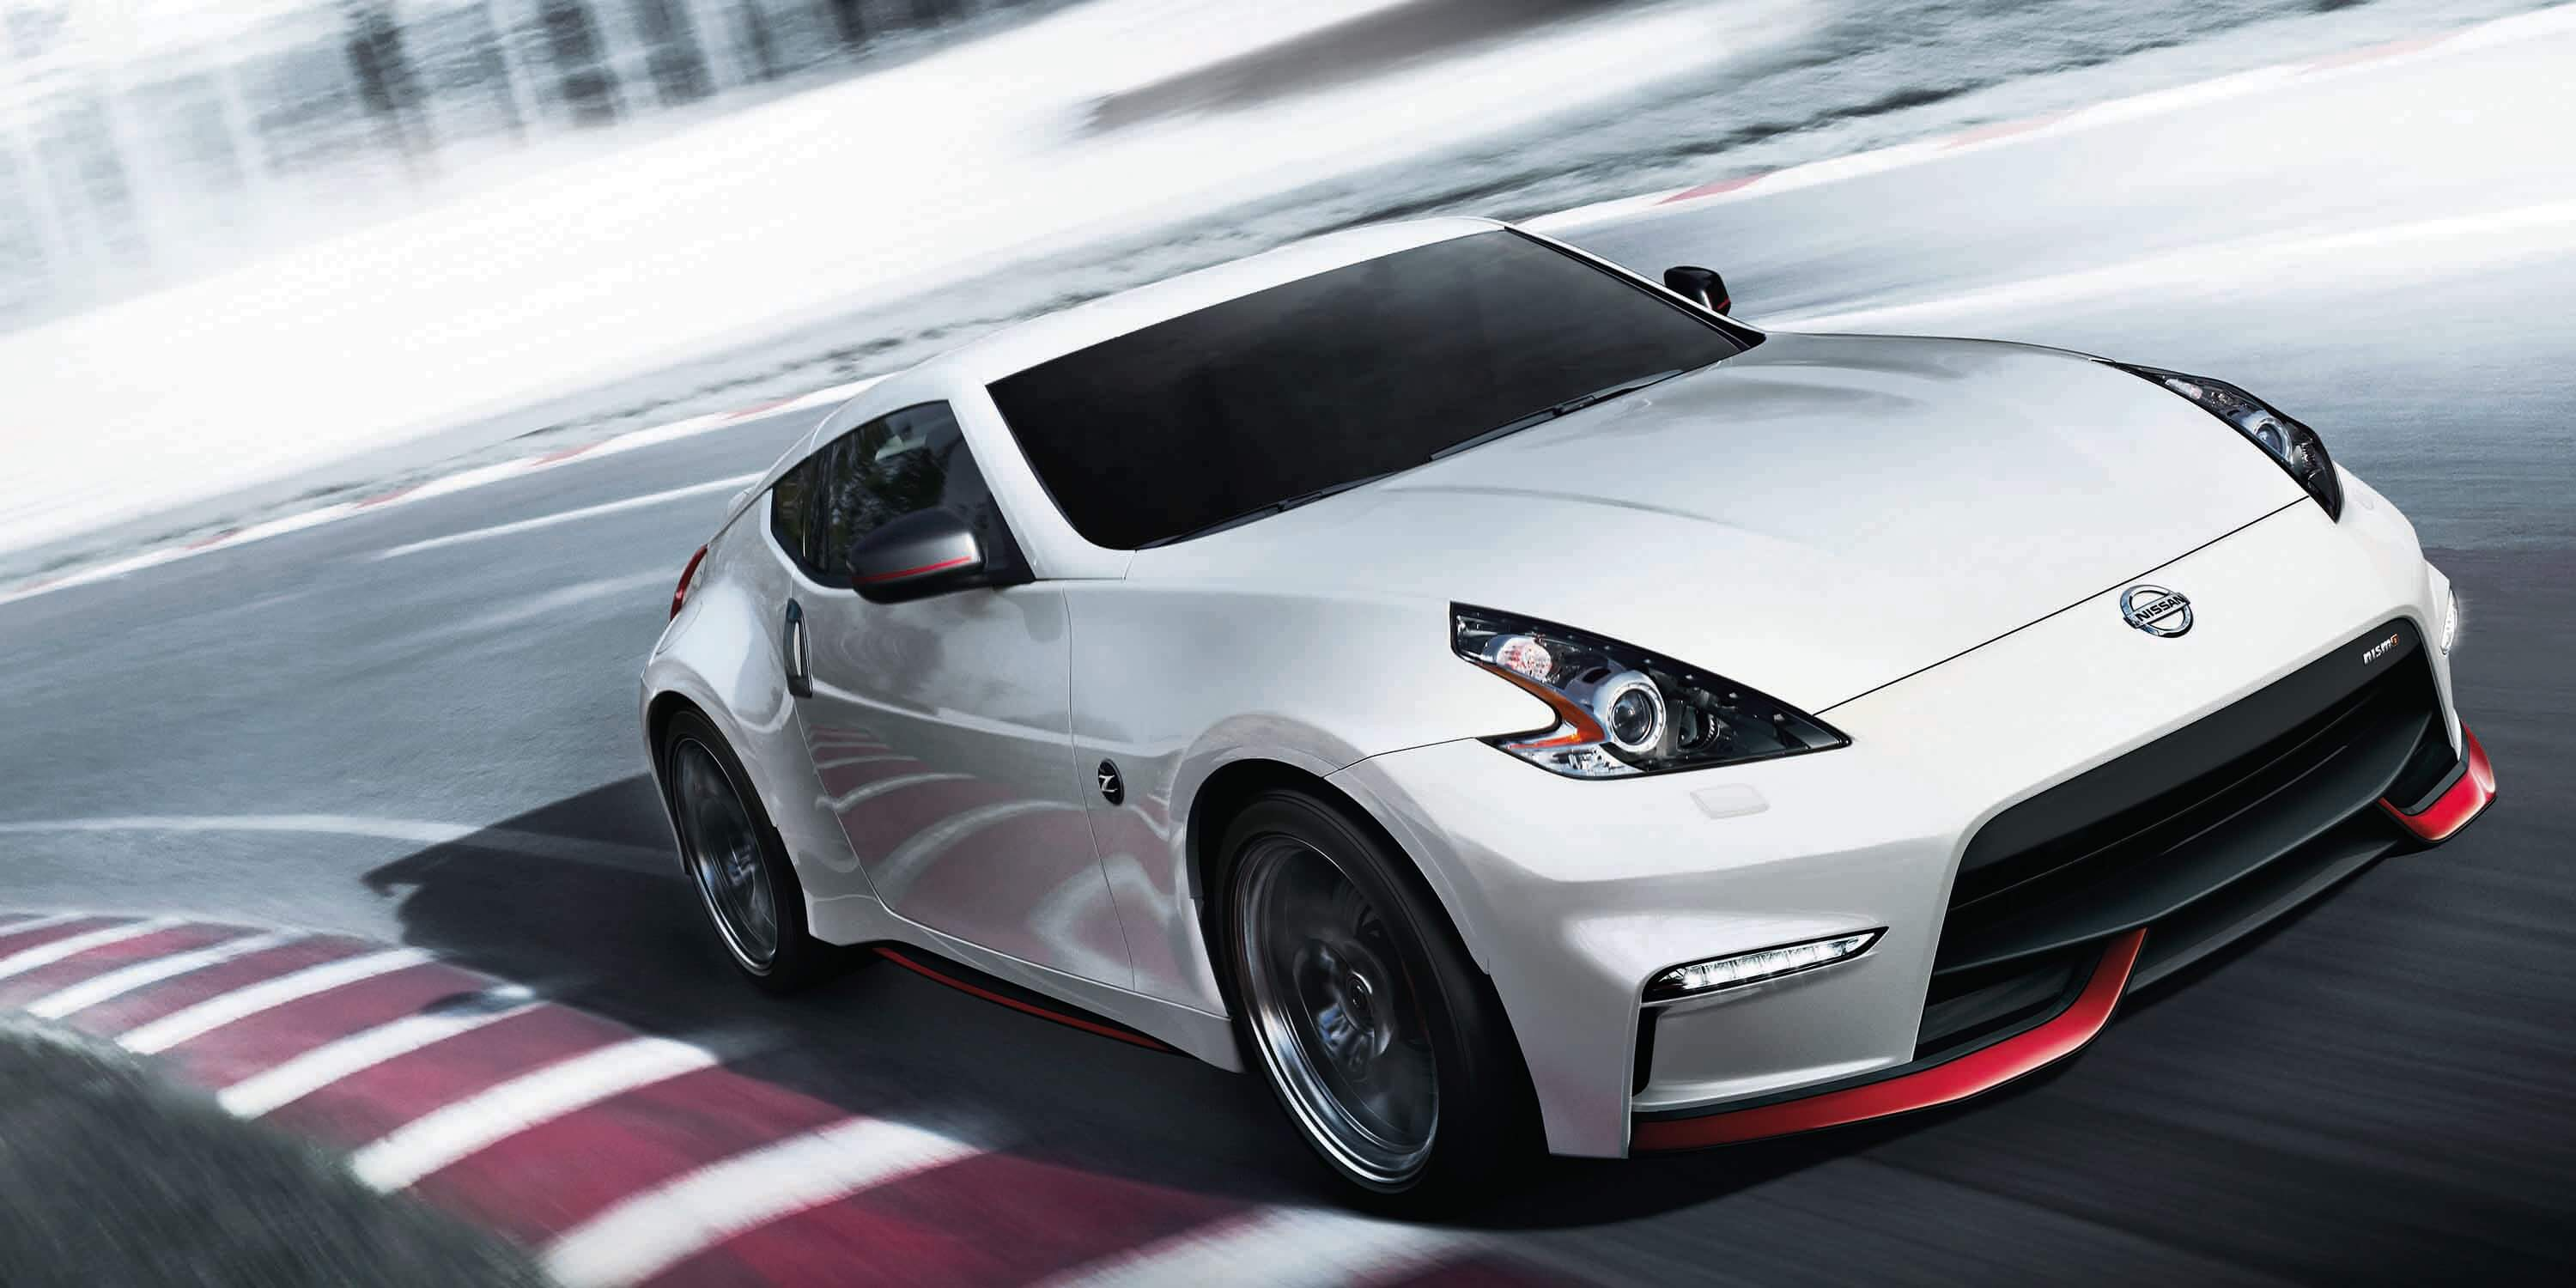 NISMO 370z racing on racetrack